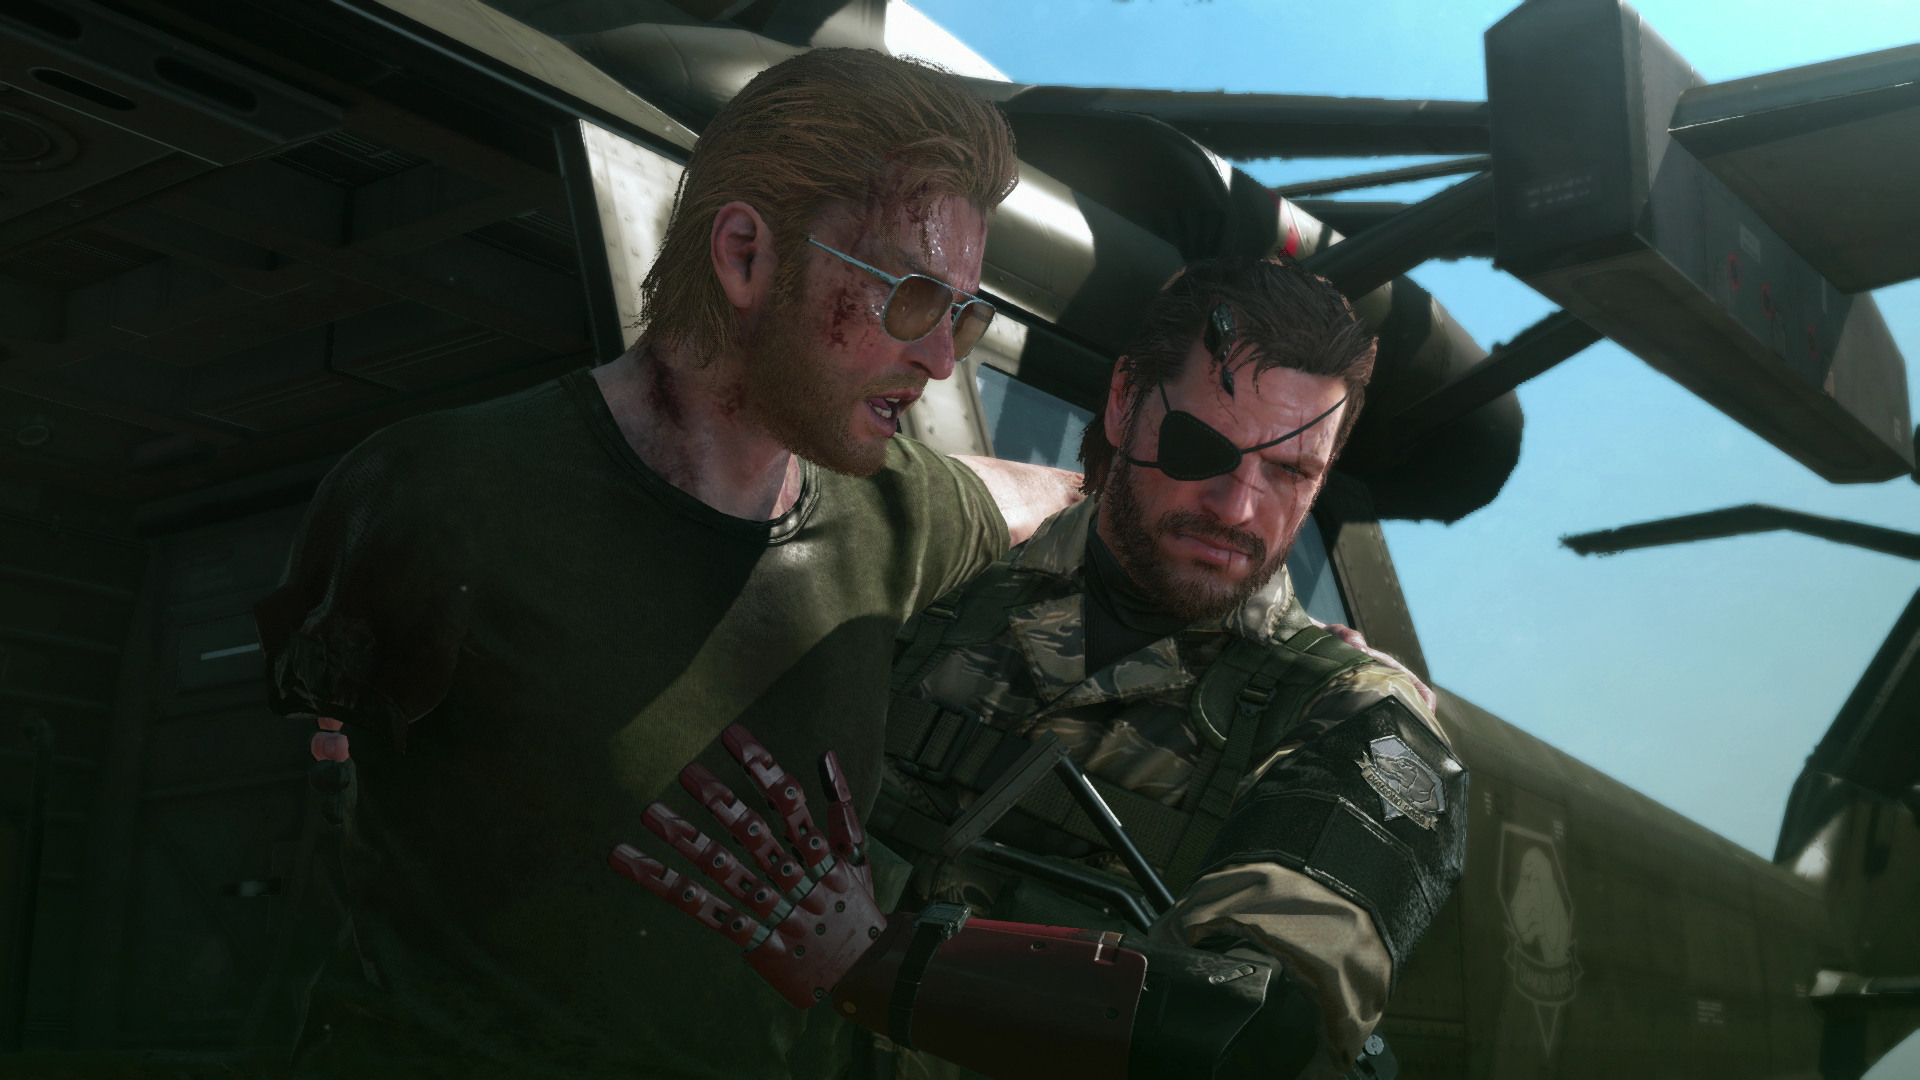 Who S Who In Metal Gear Solid 5 The Phantom Pain Gamesradar